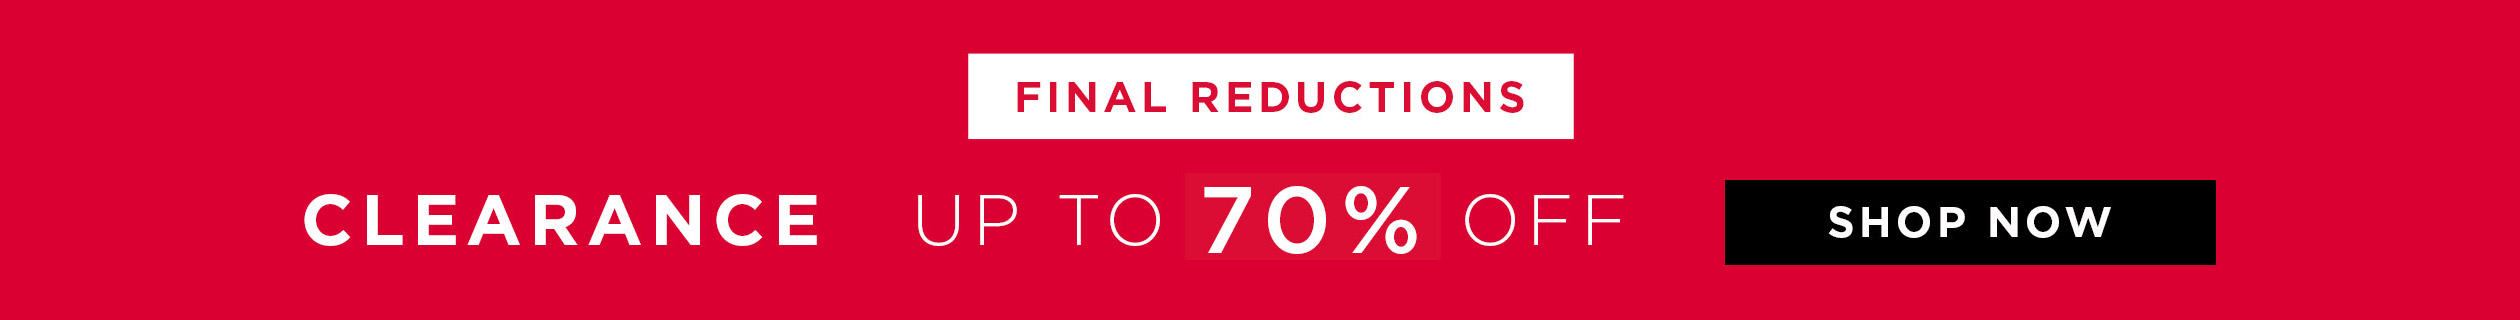 Hobbs Clearance Up To 70% Off. Final Reductions